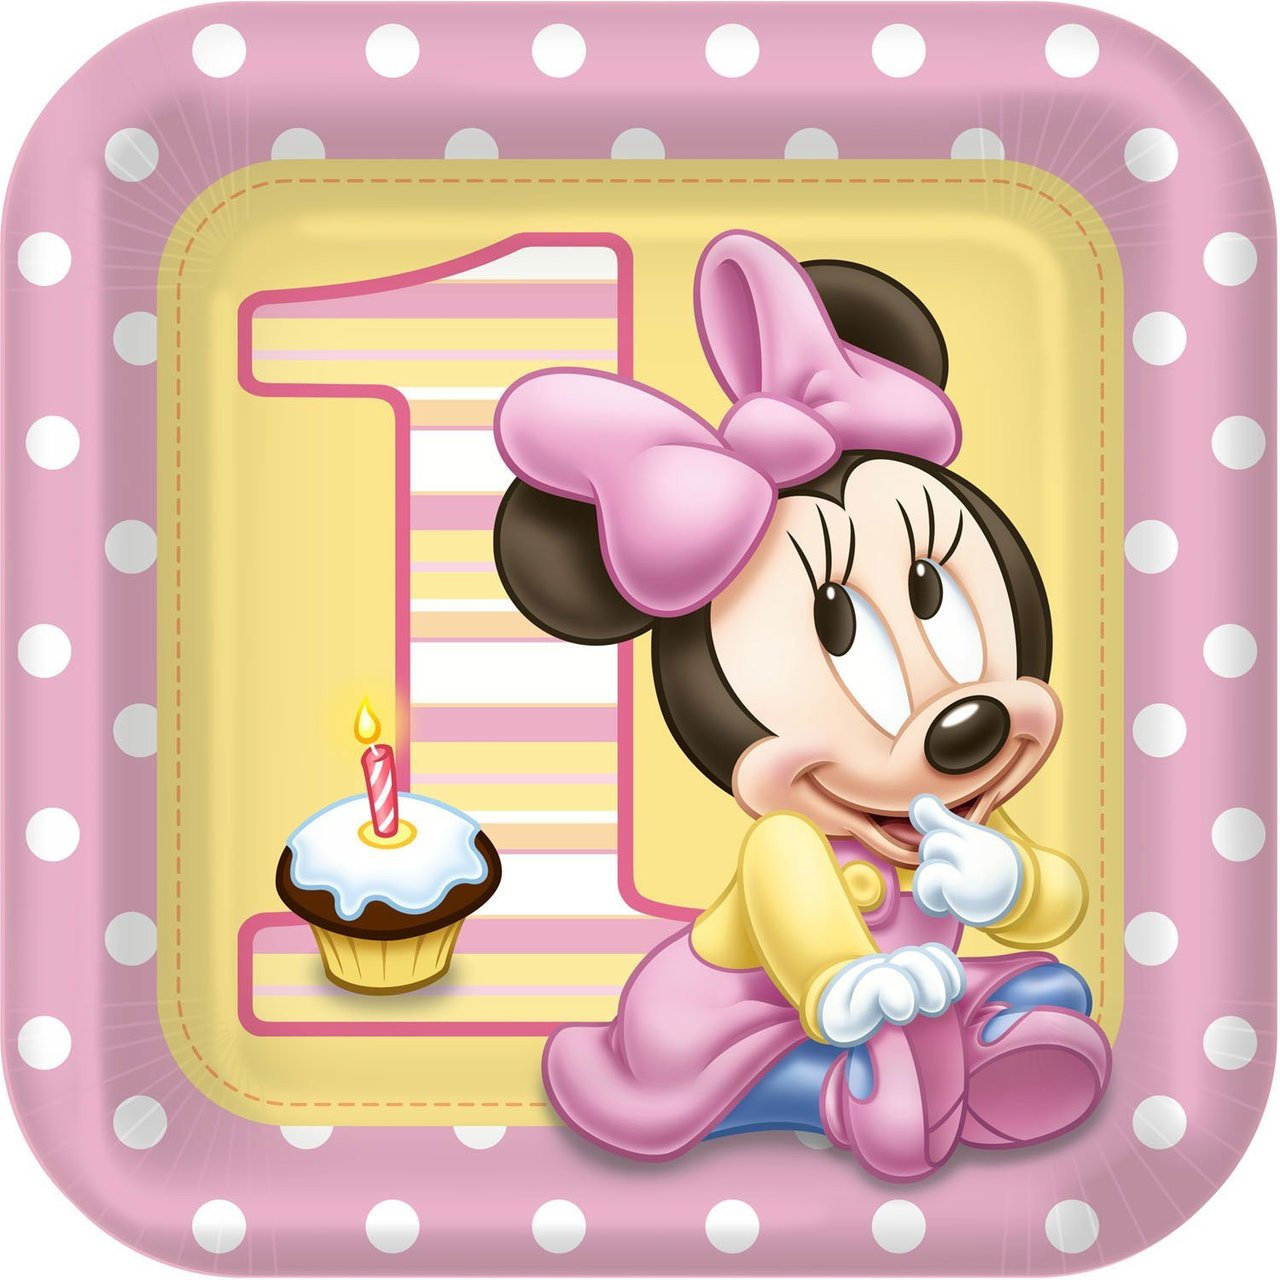 Minnie Mouse Large 9 Inch Square Lunch Dinner Plates - Baby 1st Birthday